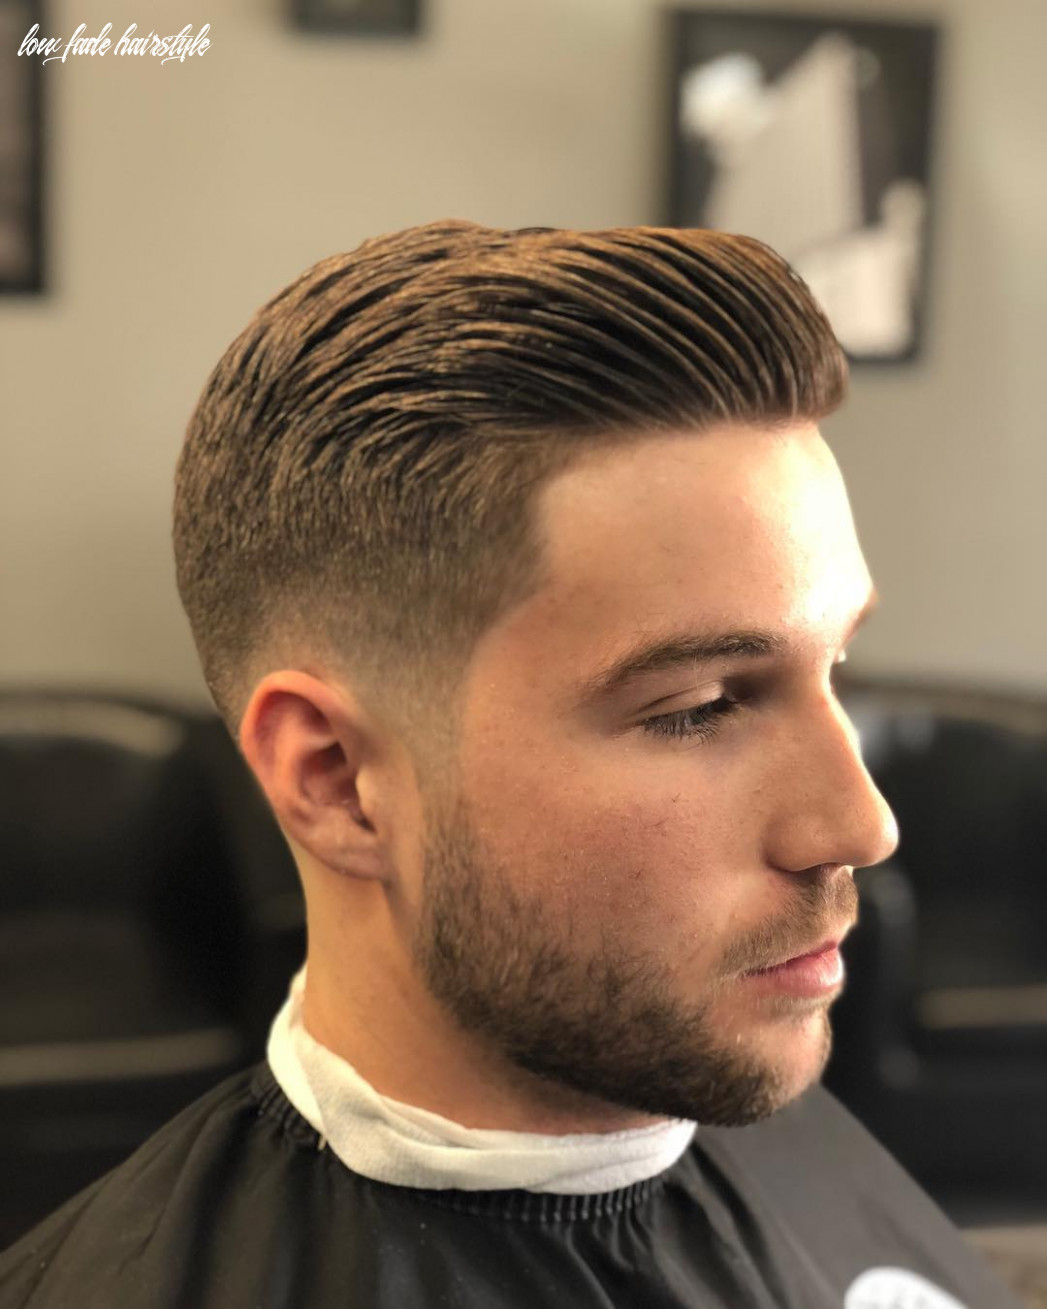 12 things you must consider before going a for low fade haircut